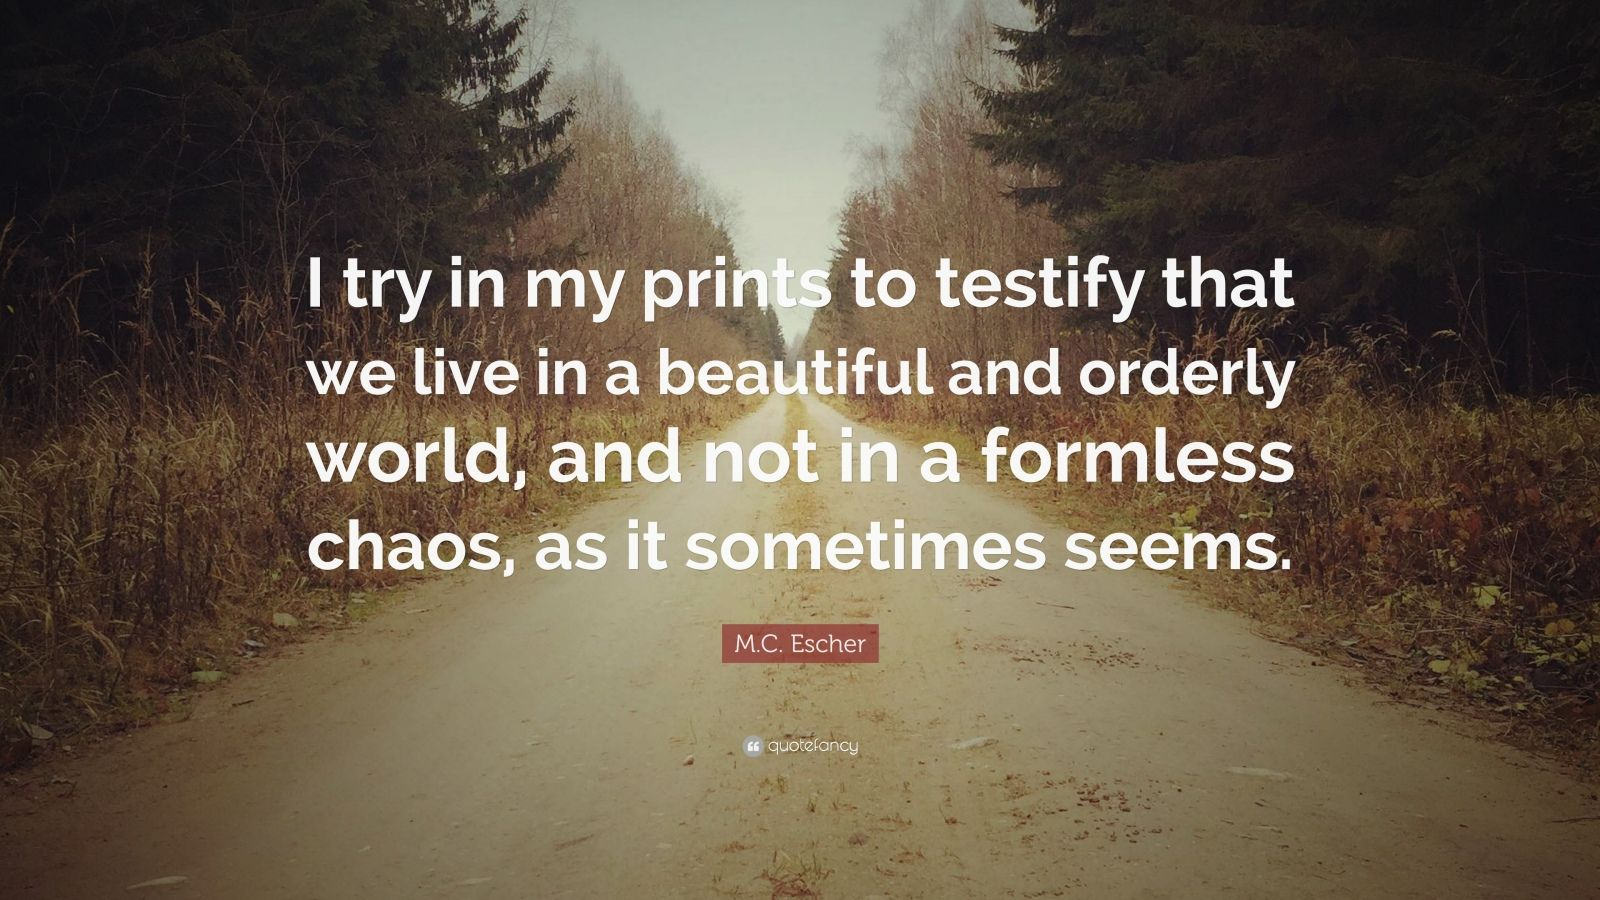 """M.C. Escher Quote: """"I try in my prints to testify that we live in a beautiful and orderly world, and not in a formless chaos, as it sometimes seems."""""""